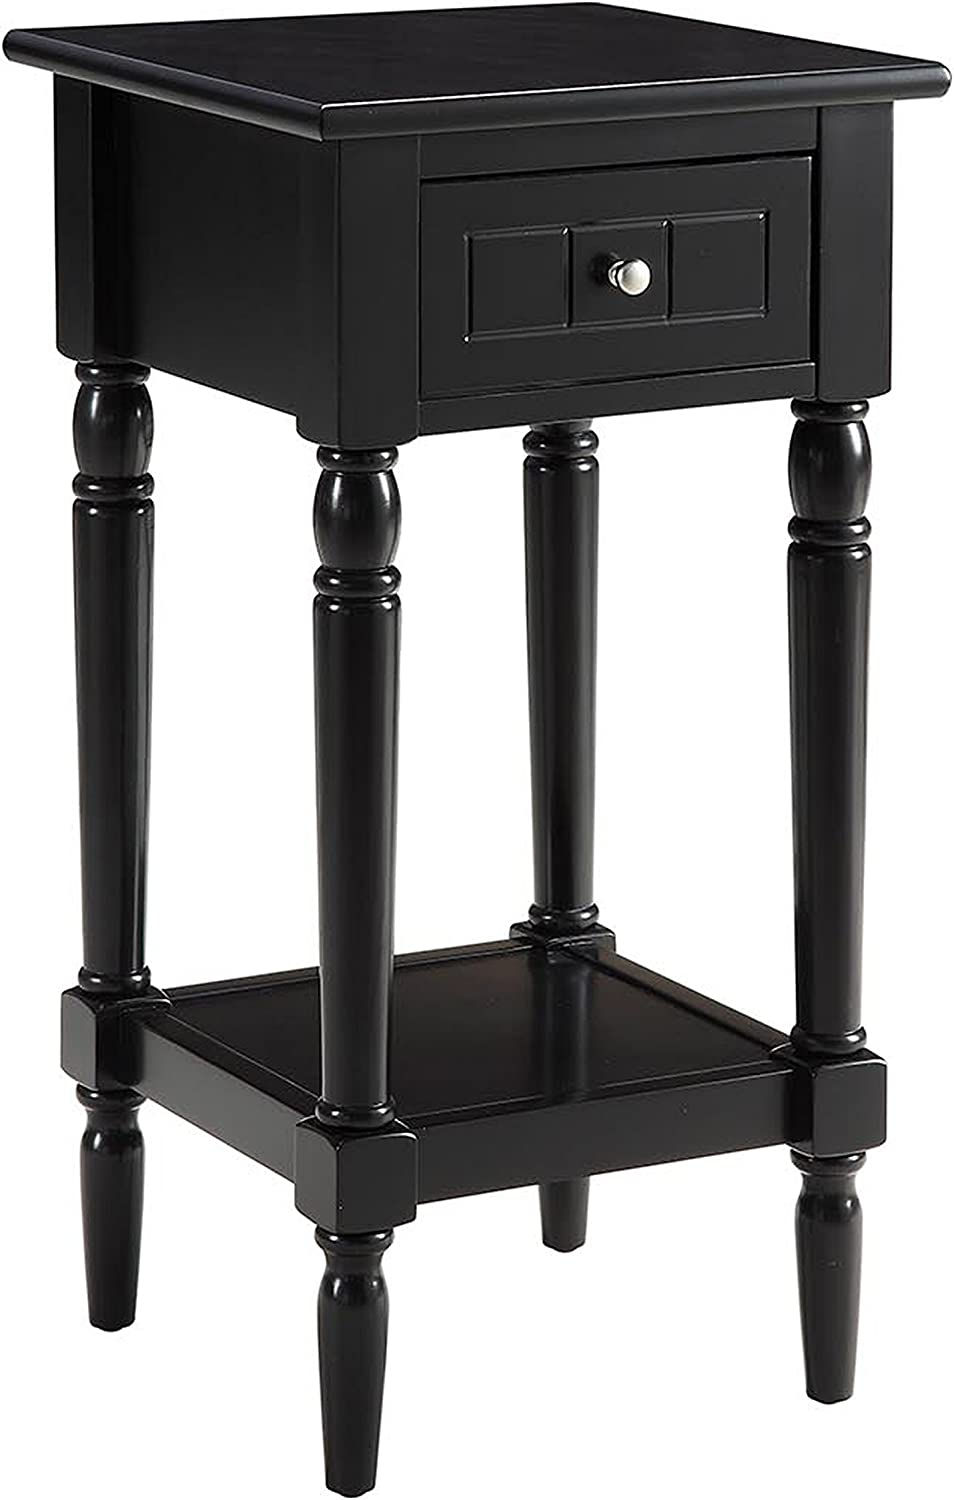 Convenience Concepts French Country Khloe Accent Table, Black